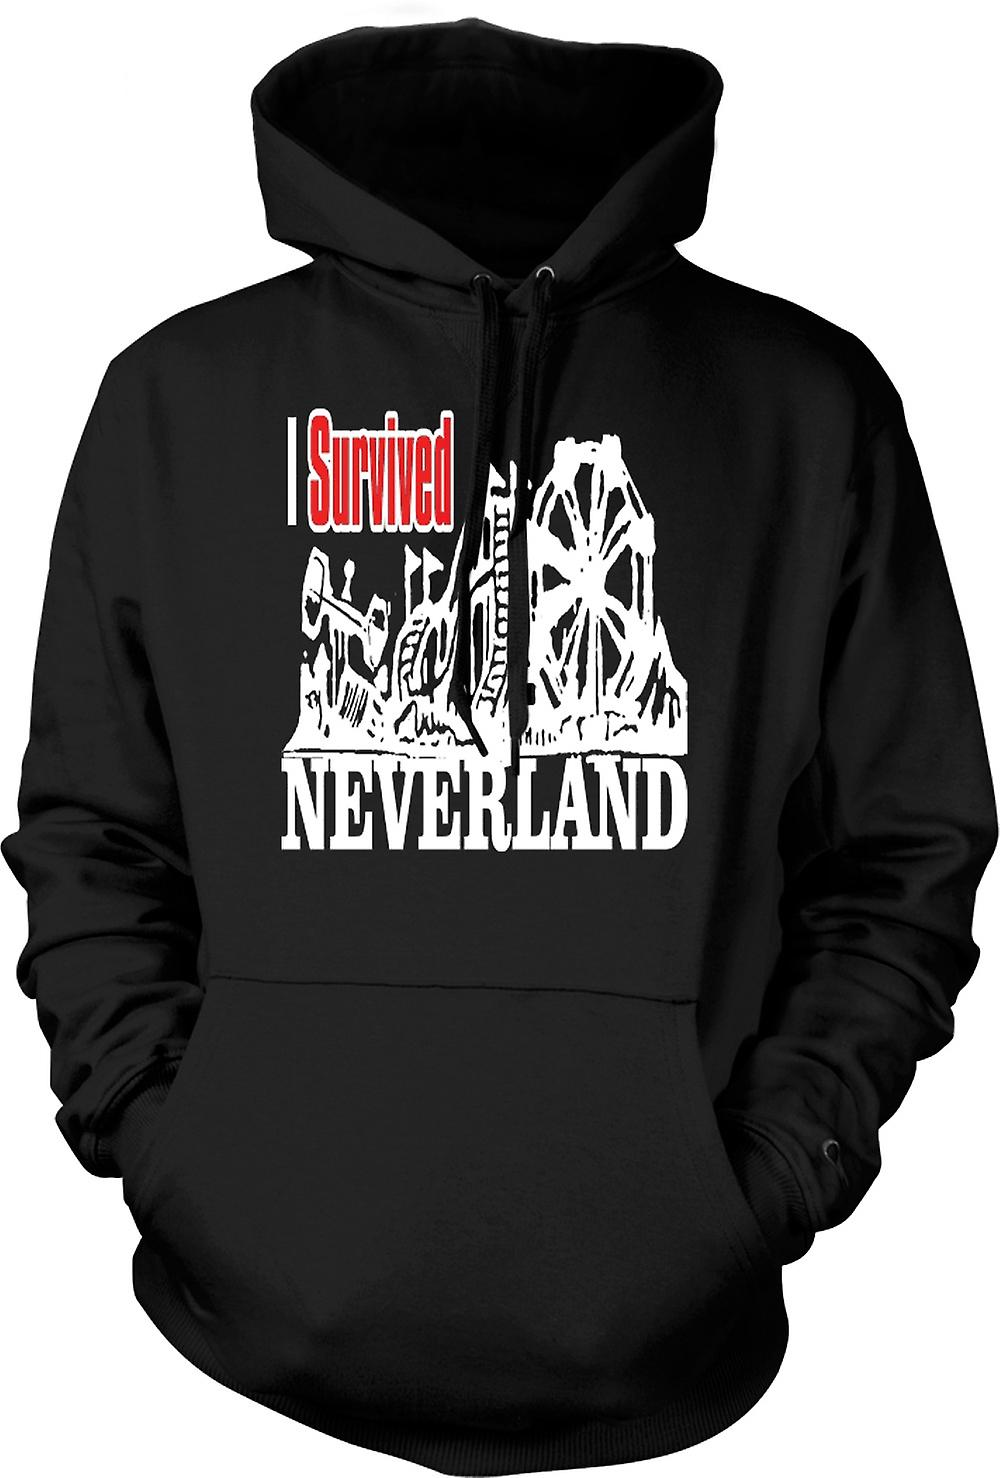 Mens Hoodie - I Survived Neverland - Funny